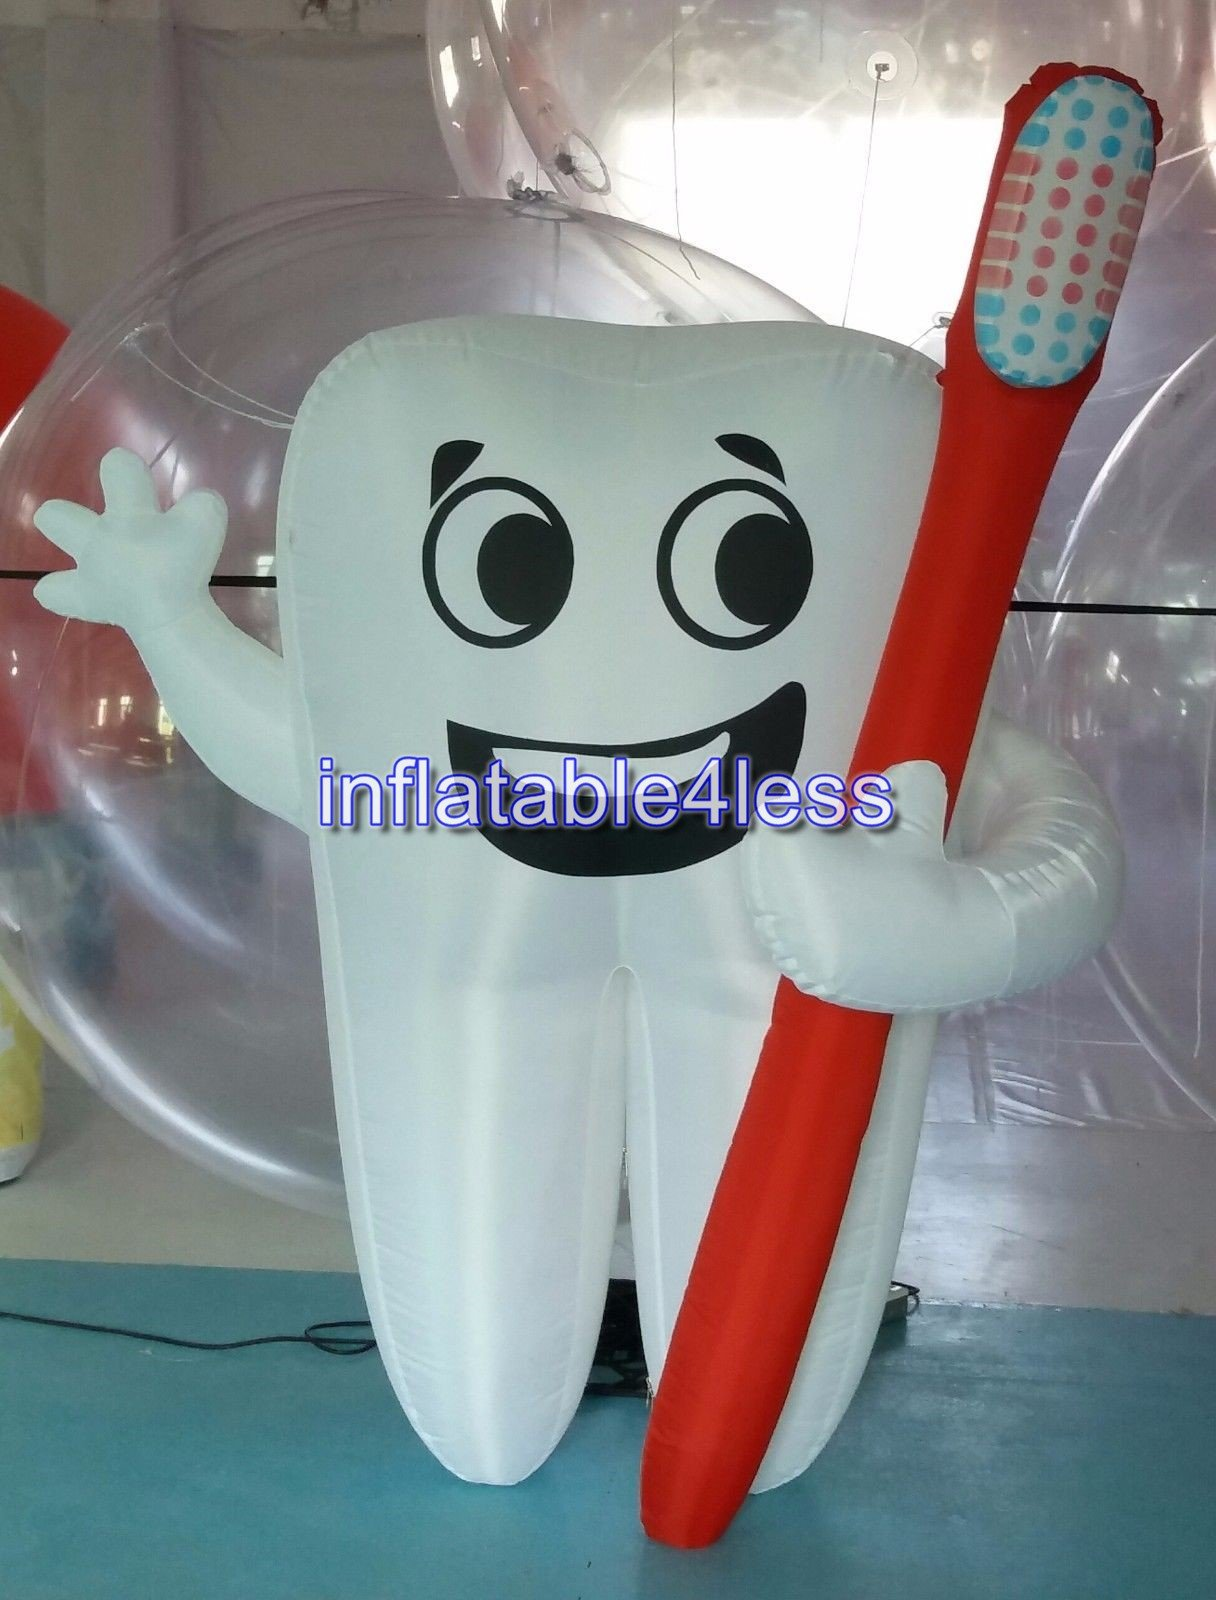 Inflatable4less Inflatable Tooth Advertising Dentist Ad Health Promotion Custom Made (6.5FT)